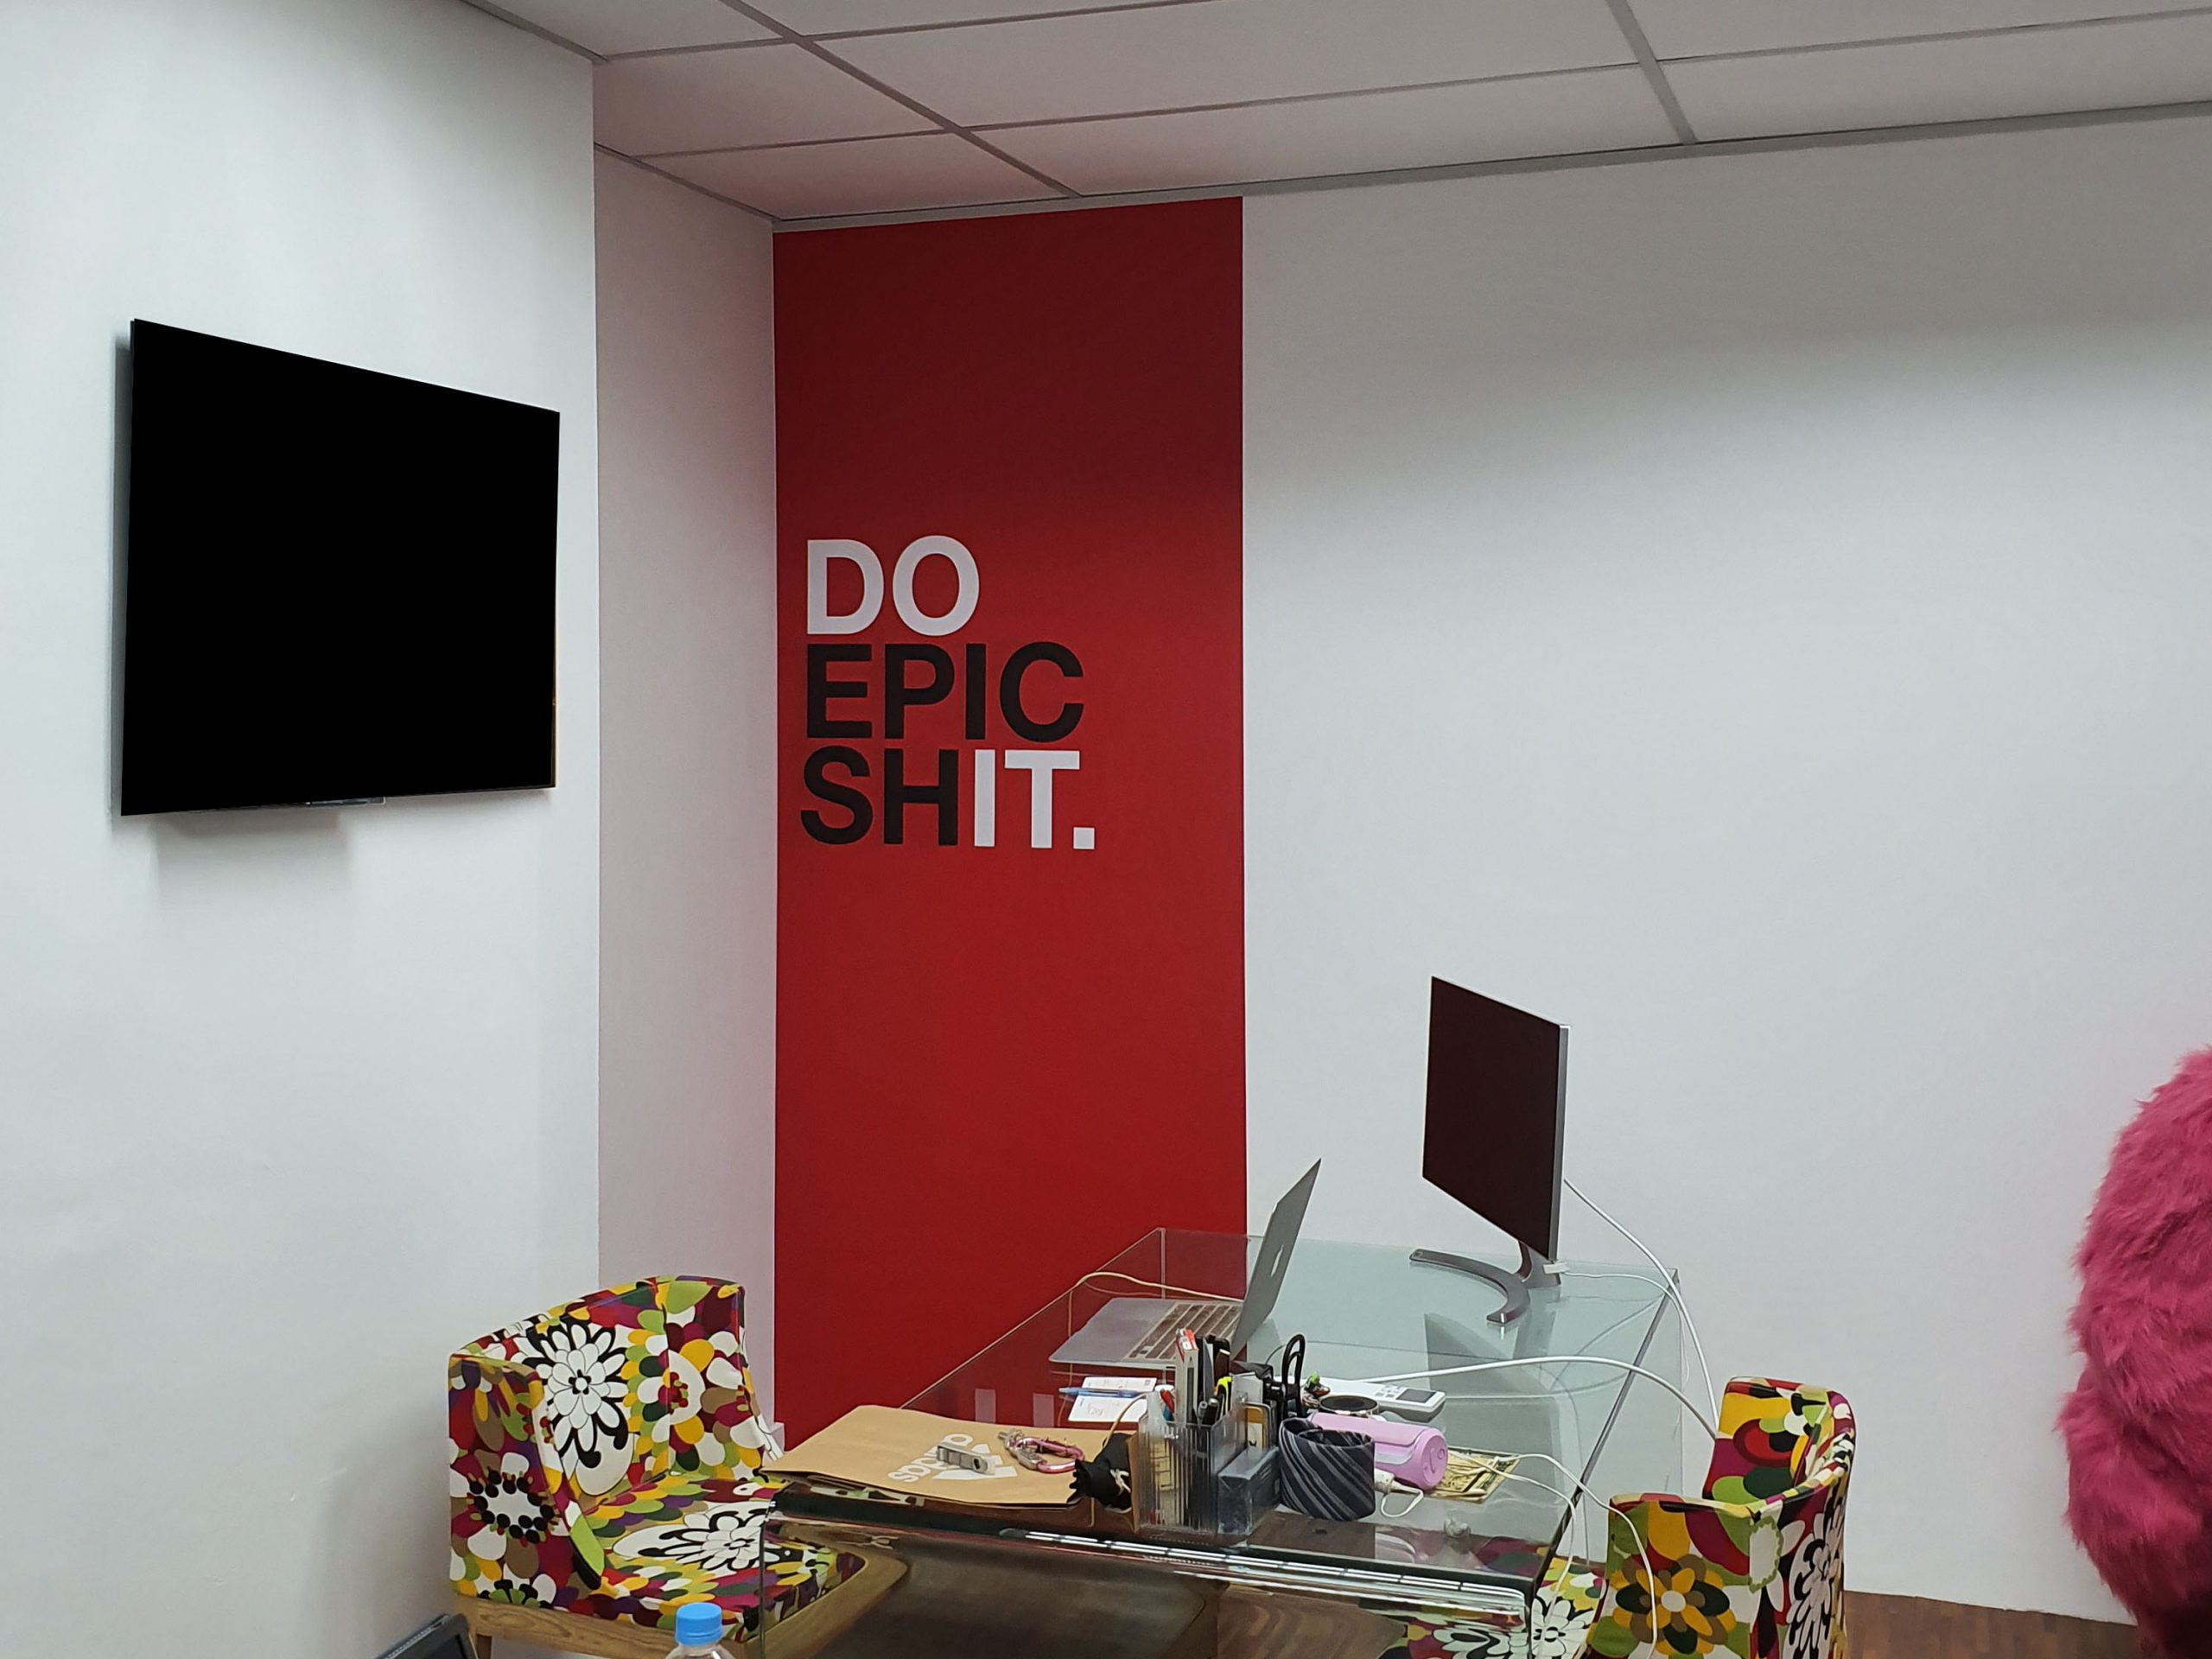 Office Wall Decal for Smart Event Hub DO EPIC shIT